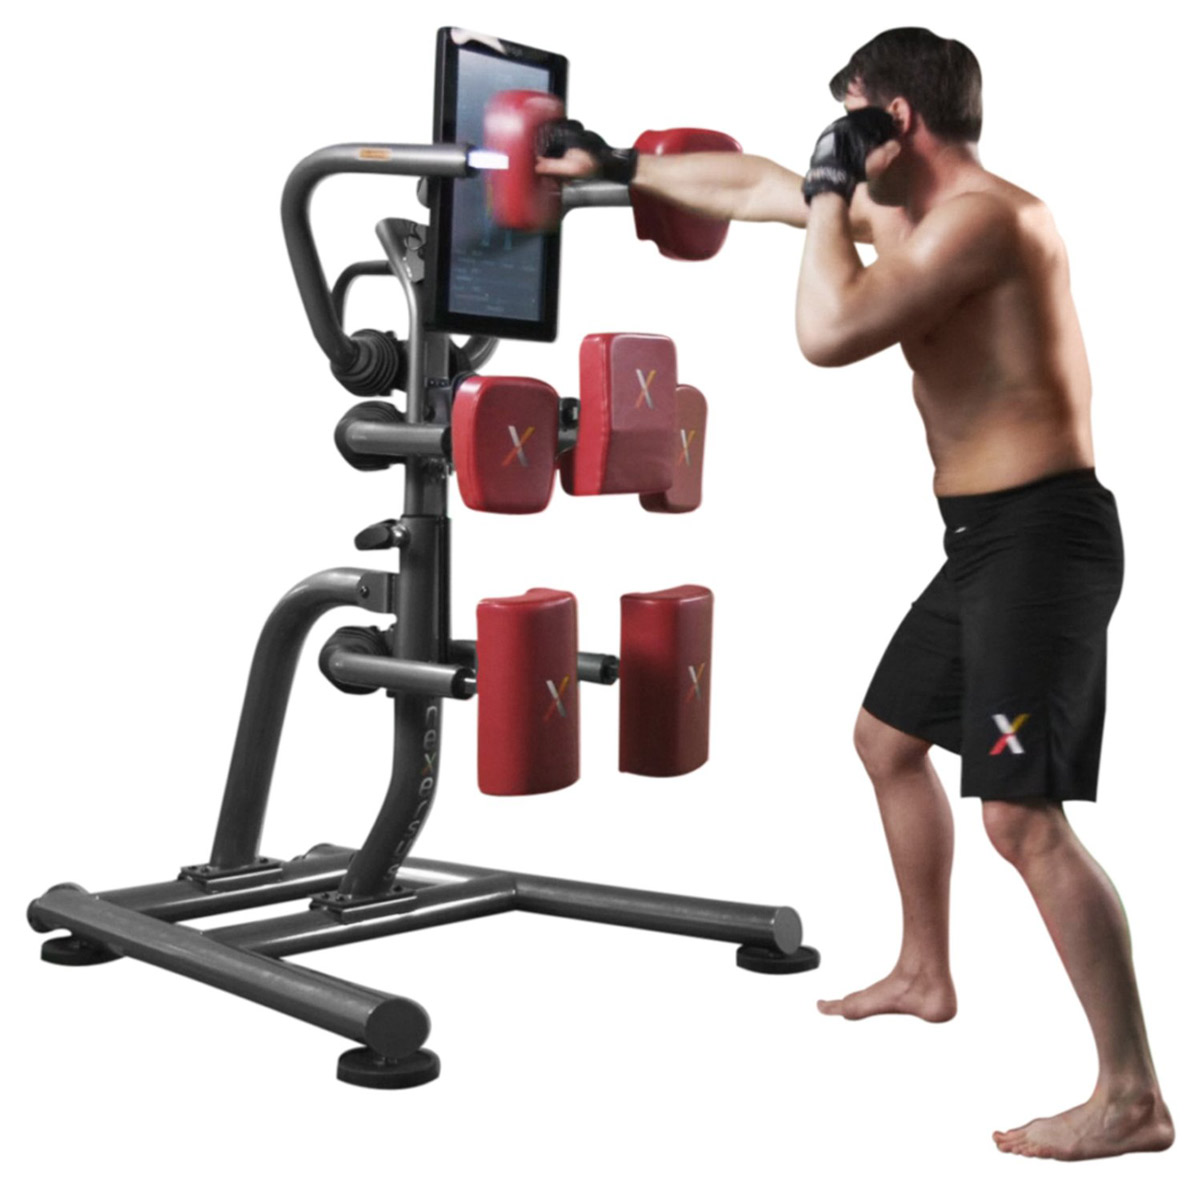 Used Commercial Gym Equipment Atlanta: The Way To Play Supremacy Mma Ps3